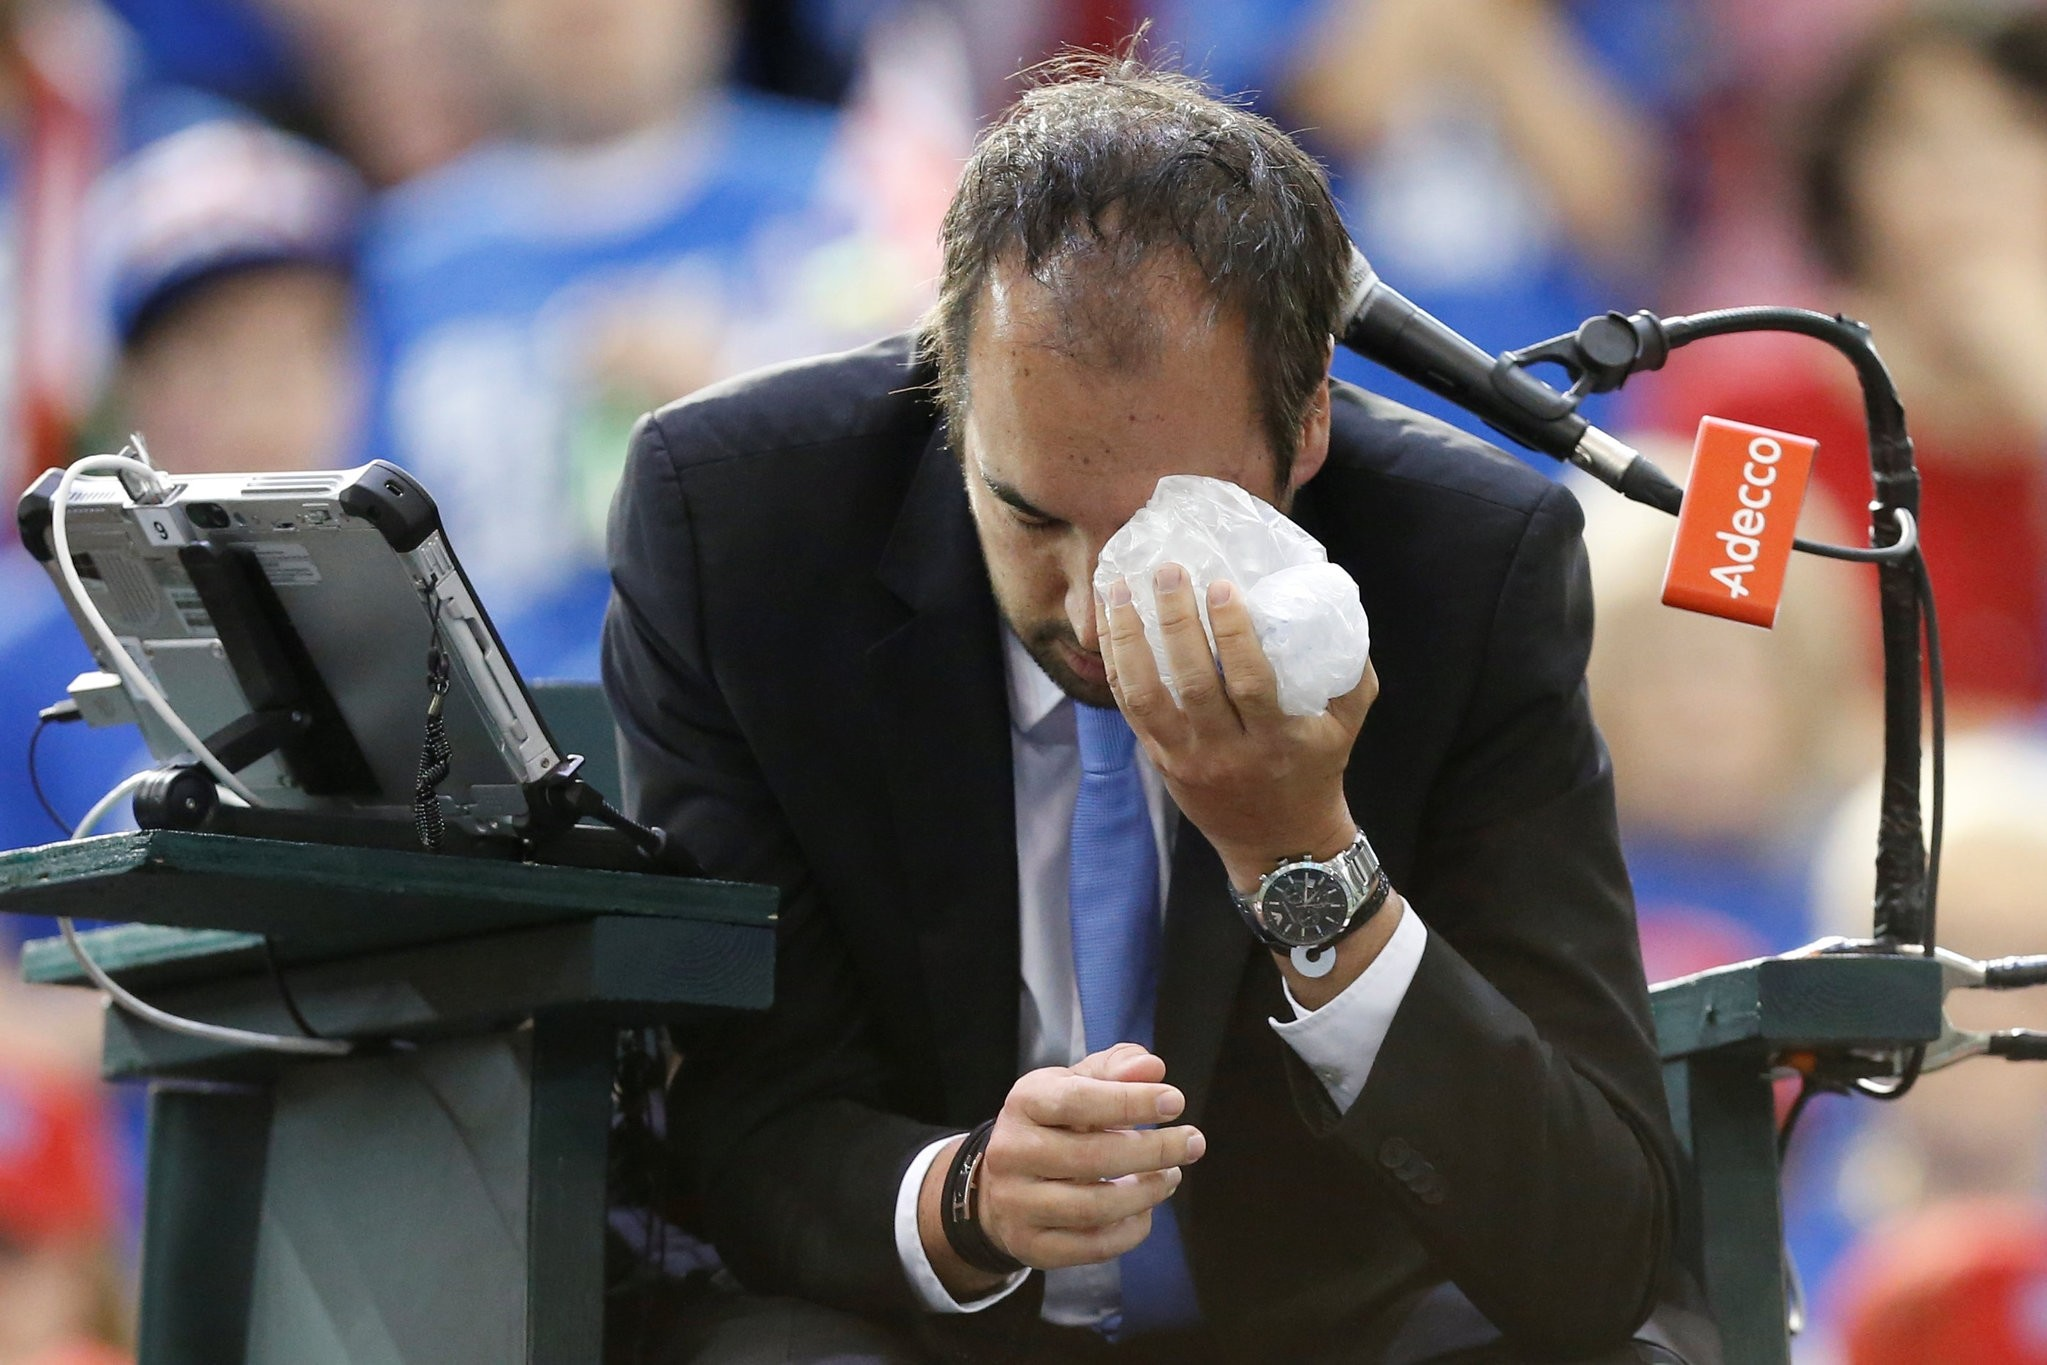 Umpire Arnaud Gabas holds an ice pack to his eye after being struck by a ball during a singles match between Shapovalov and Edmund. (REUTERS Photo)